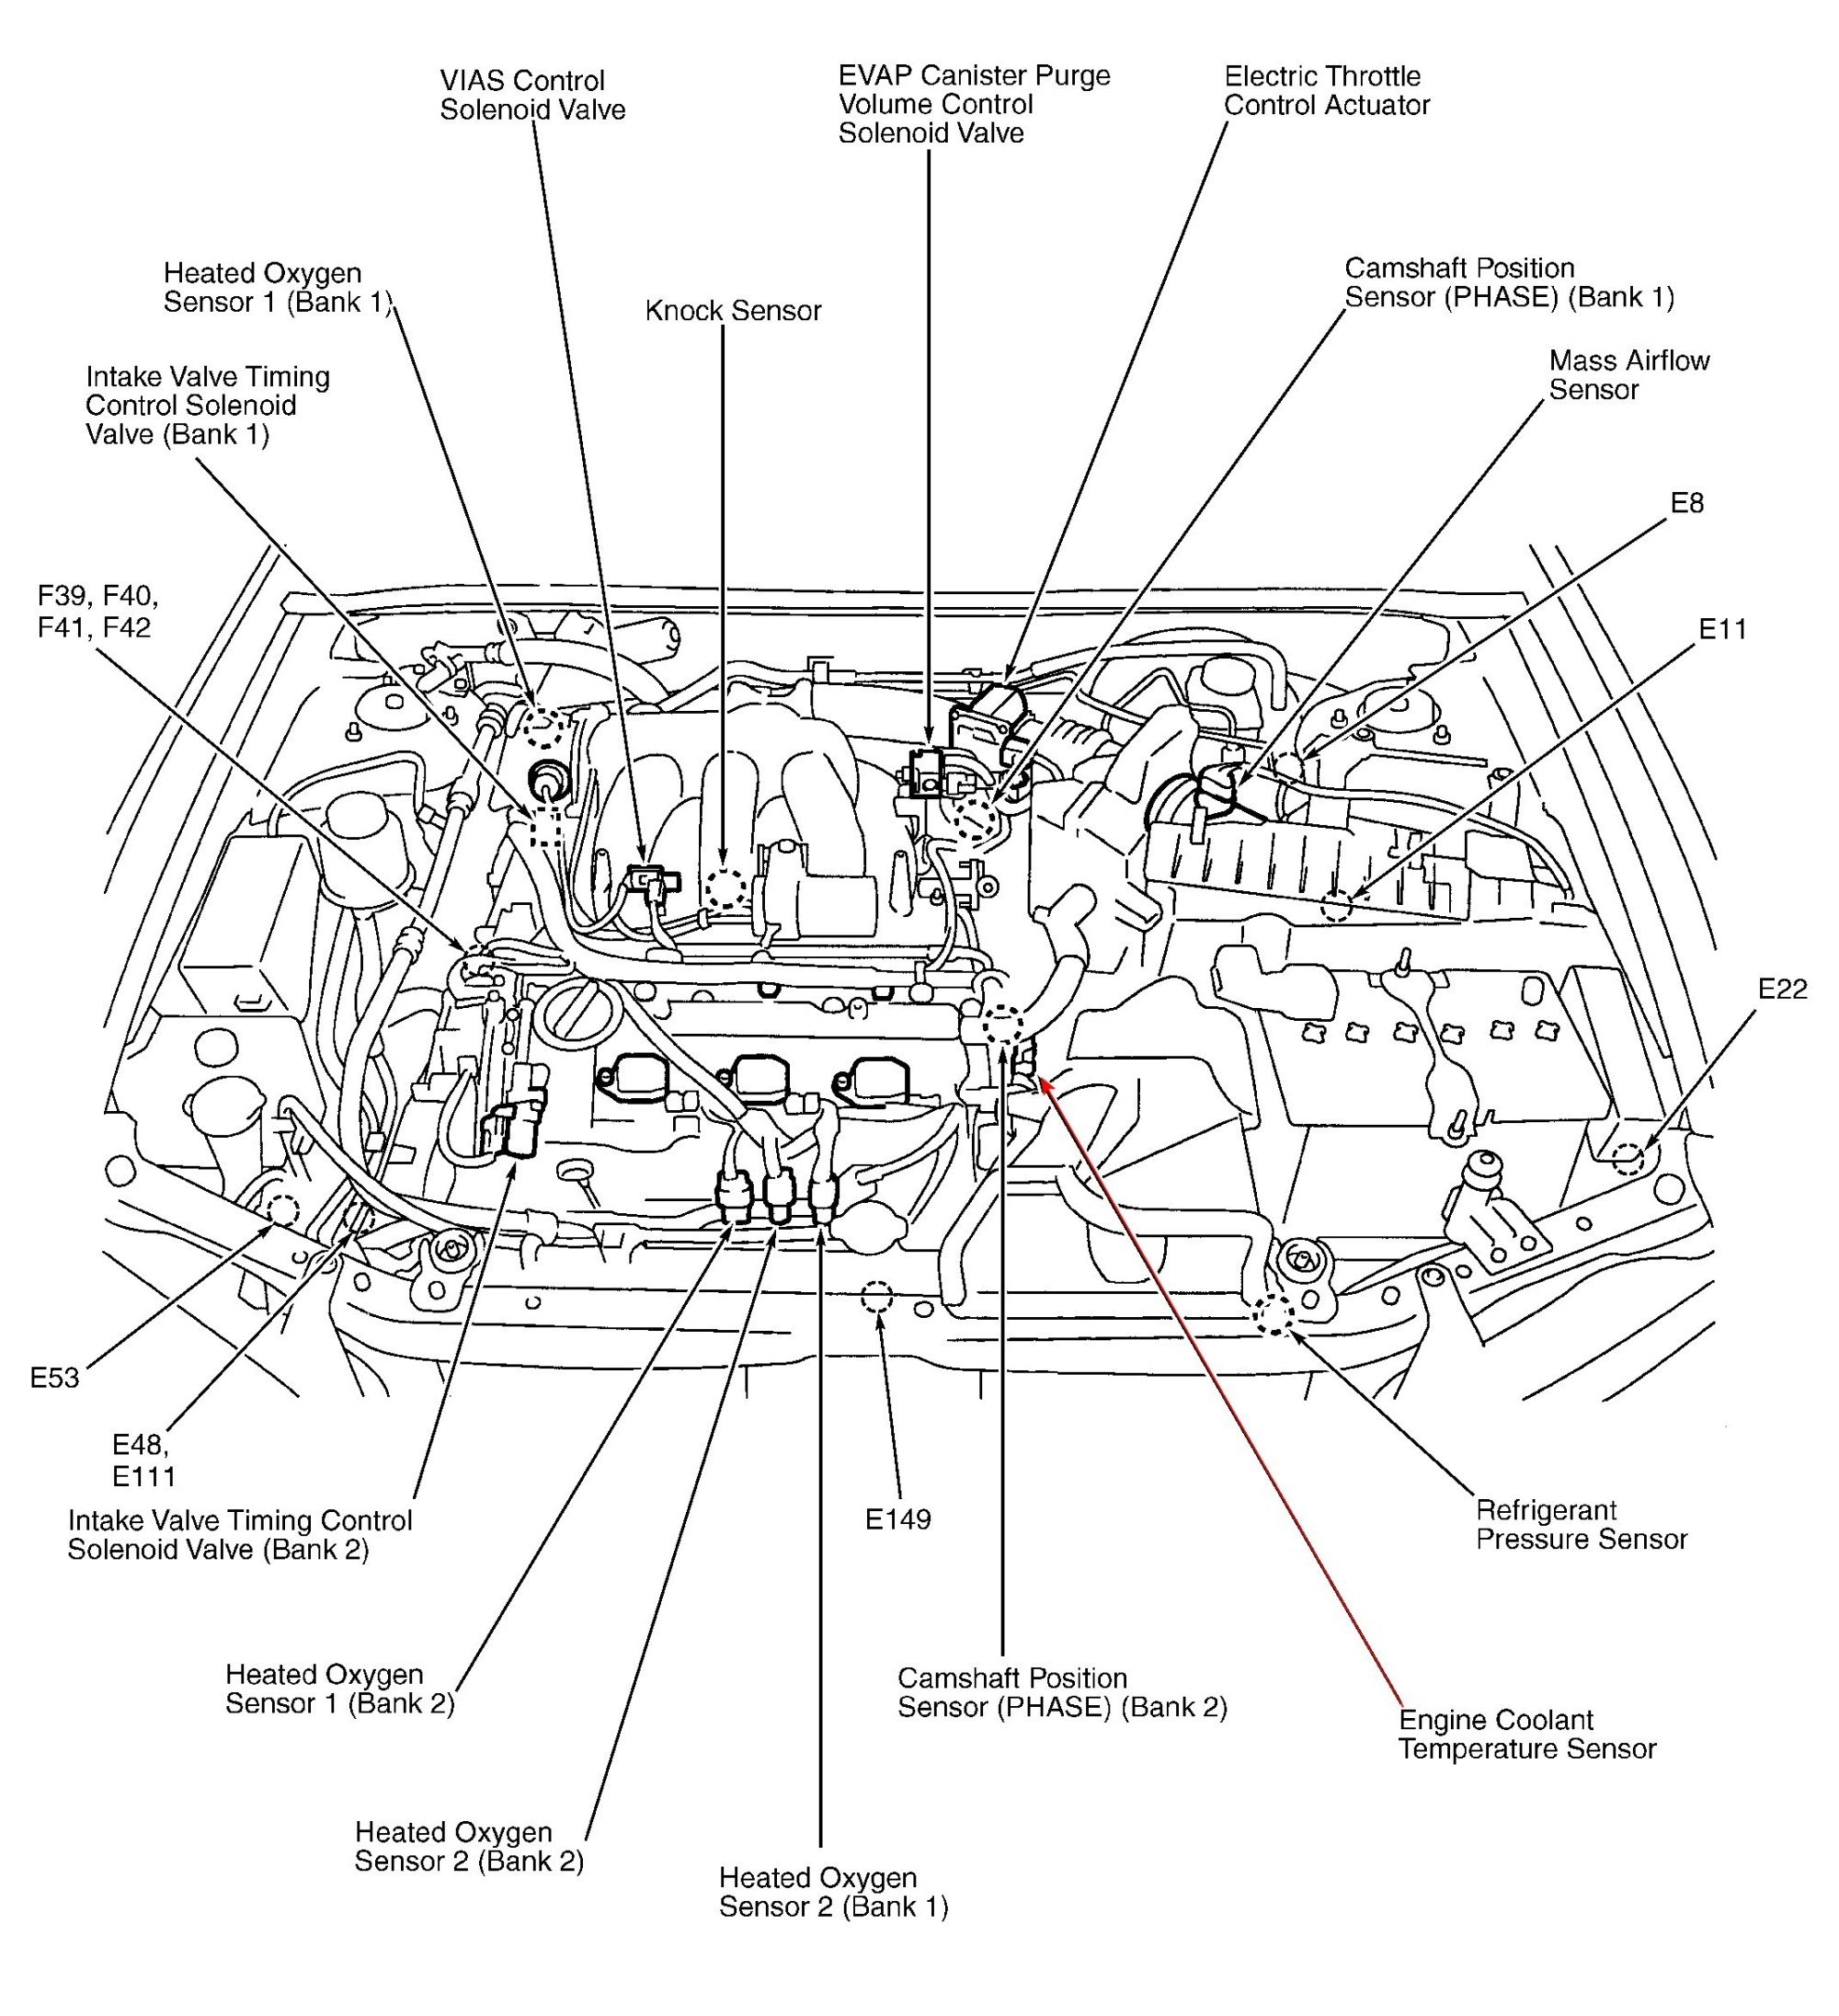 hight resolution of nissan murano crankshaft sensor wire harness color diagram wiring 2012 nissan altima stereo wiring harness diagram nissan altima wiring harness diagram